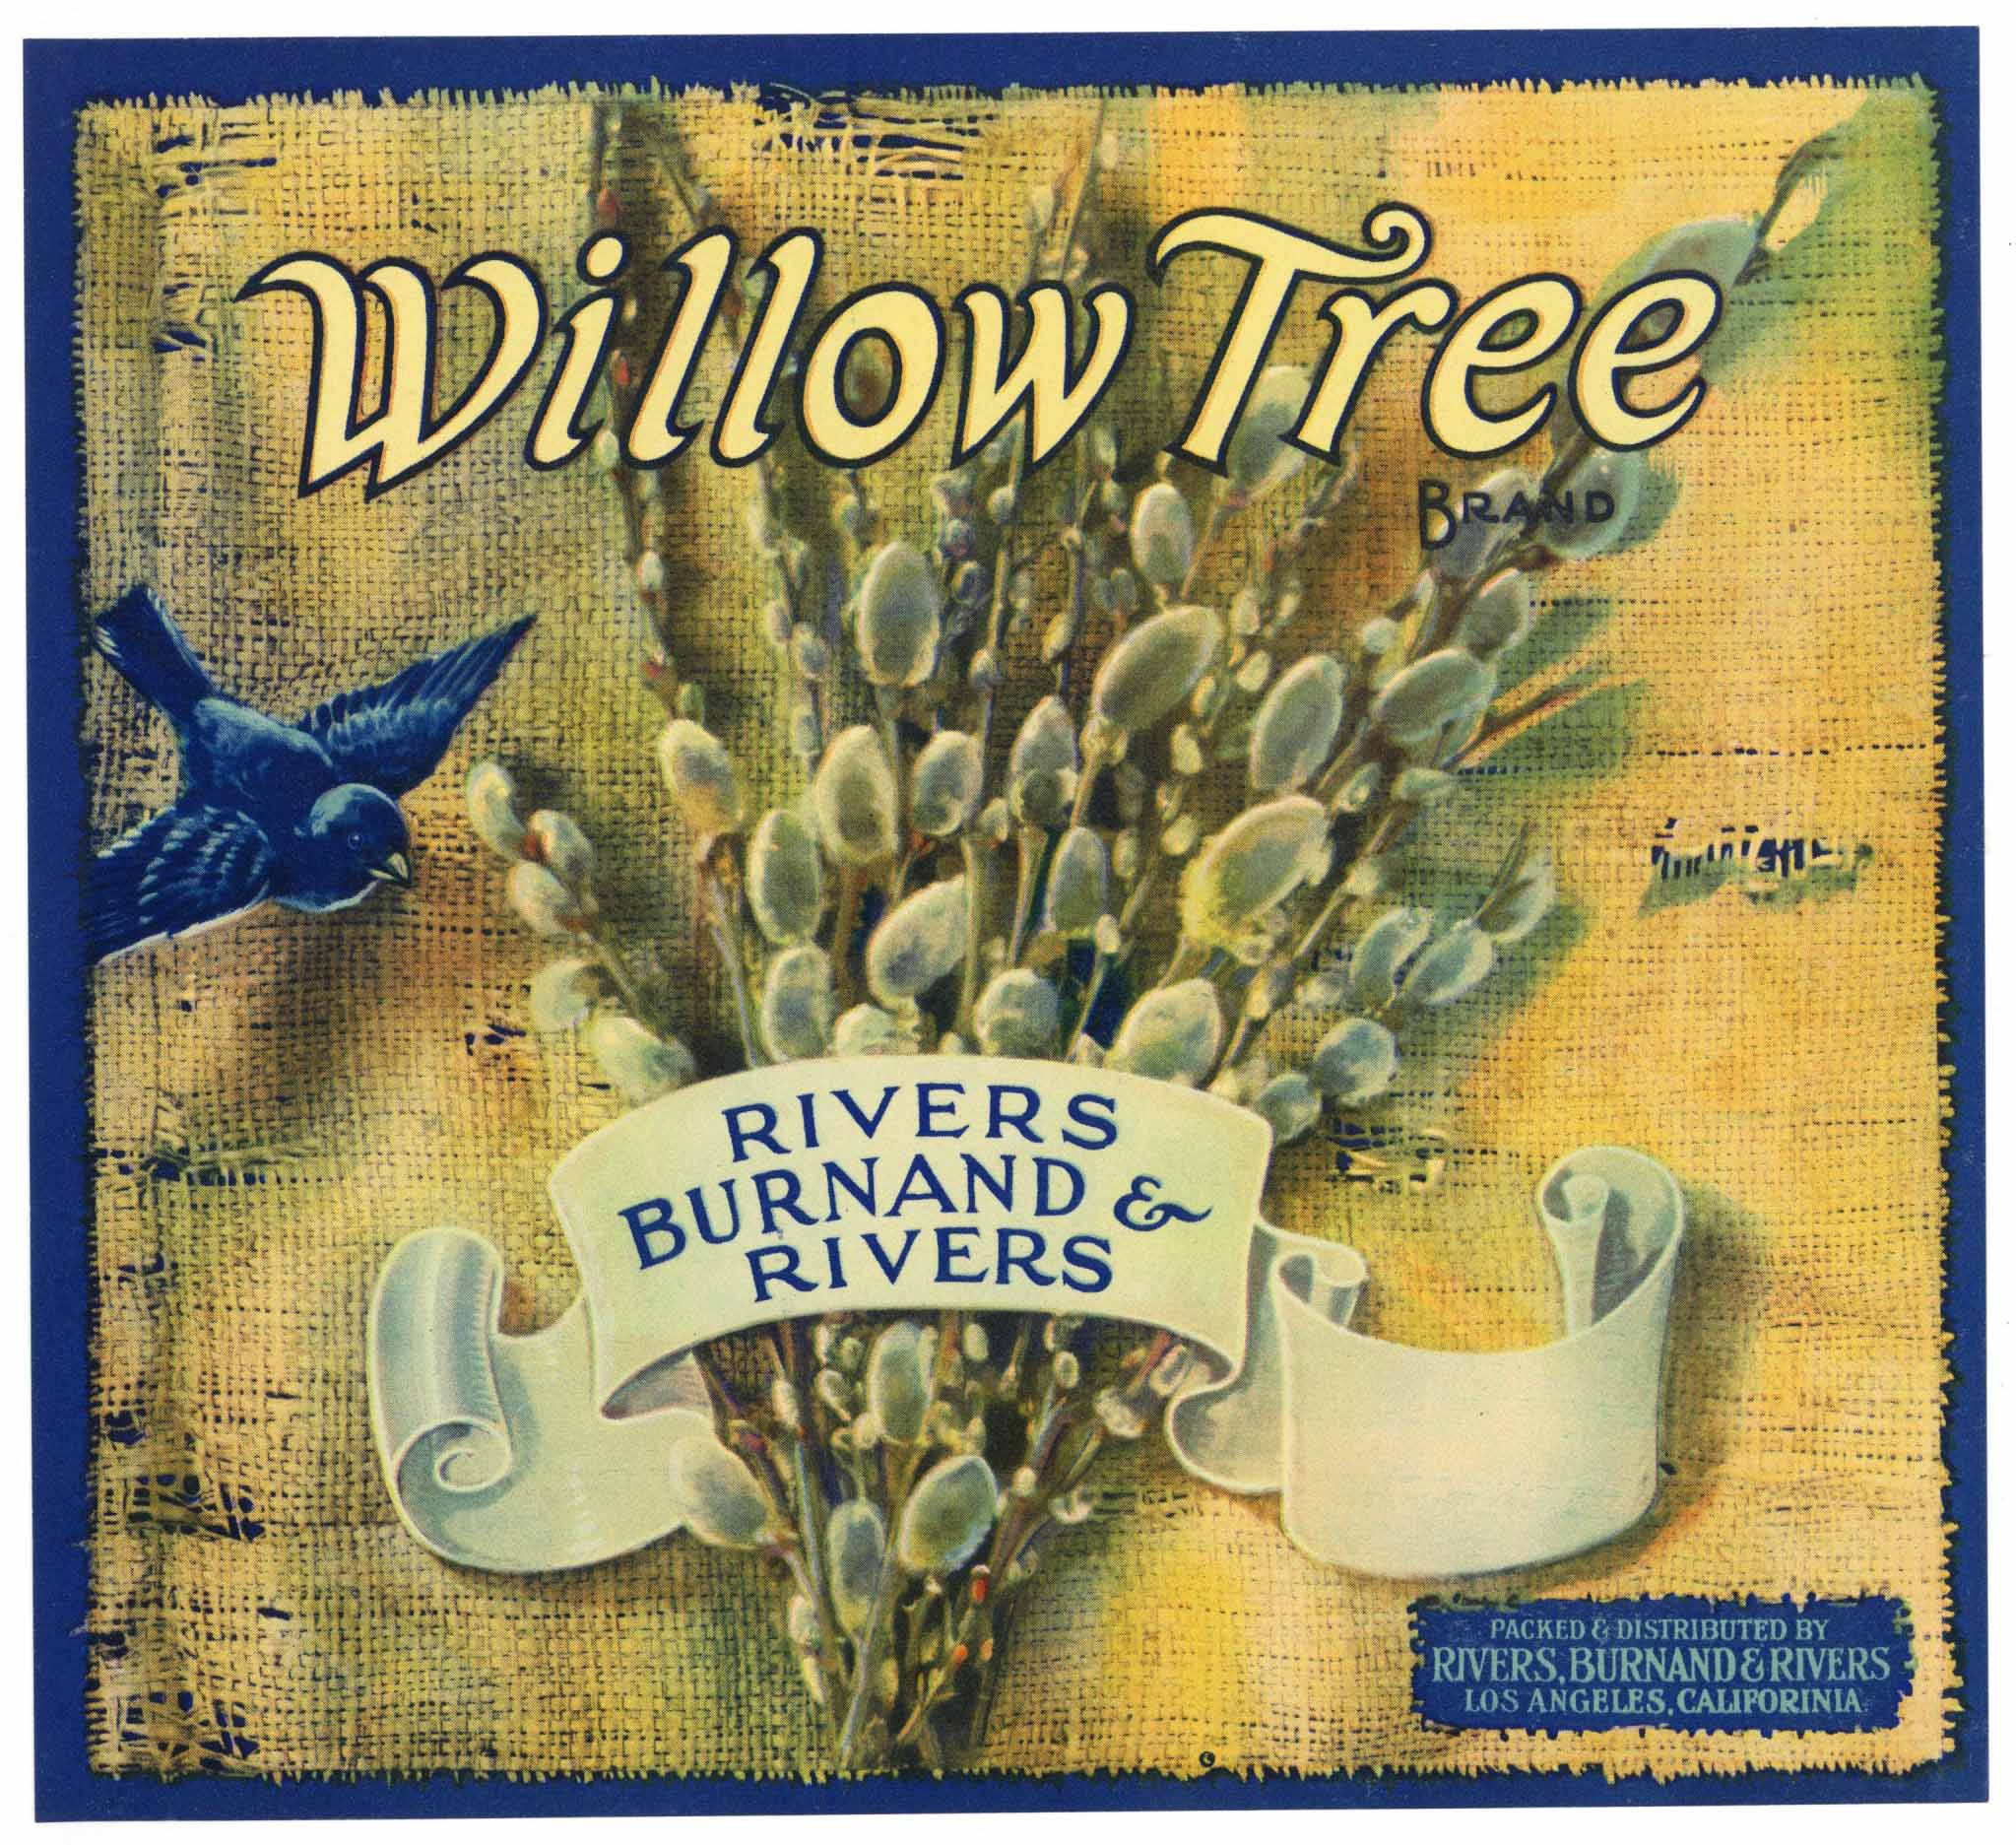 Willow Tree Brand Vintage Apple Crate Label, white